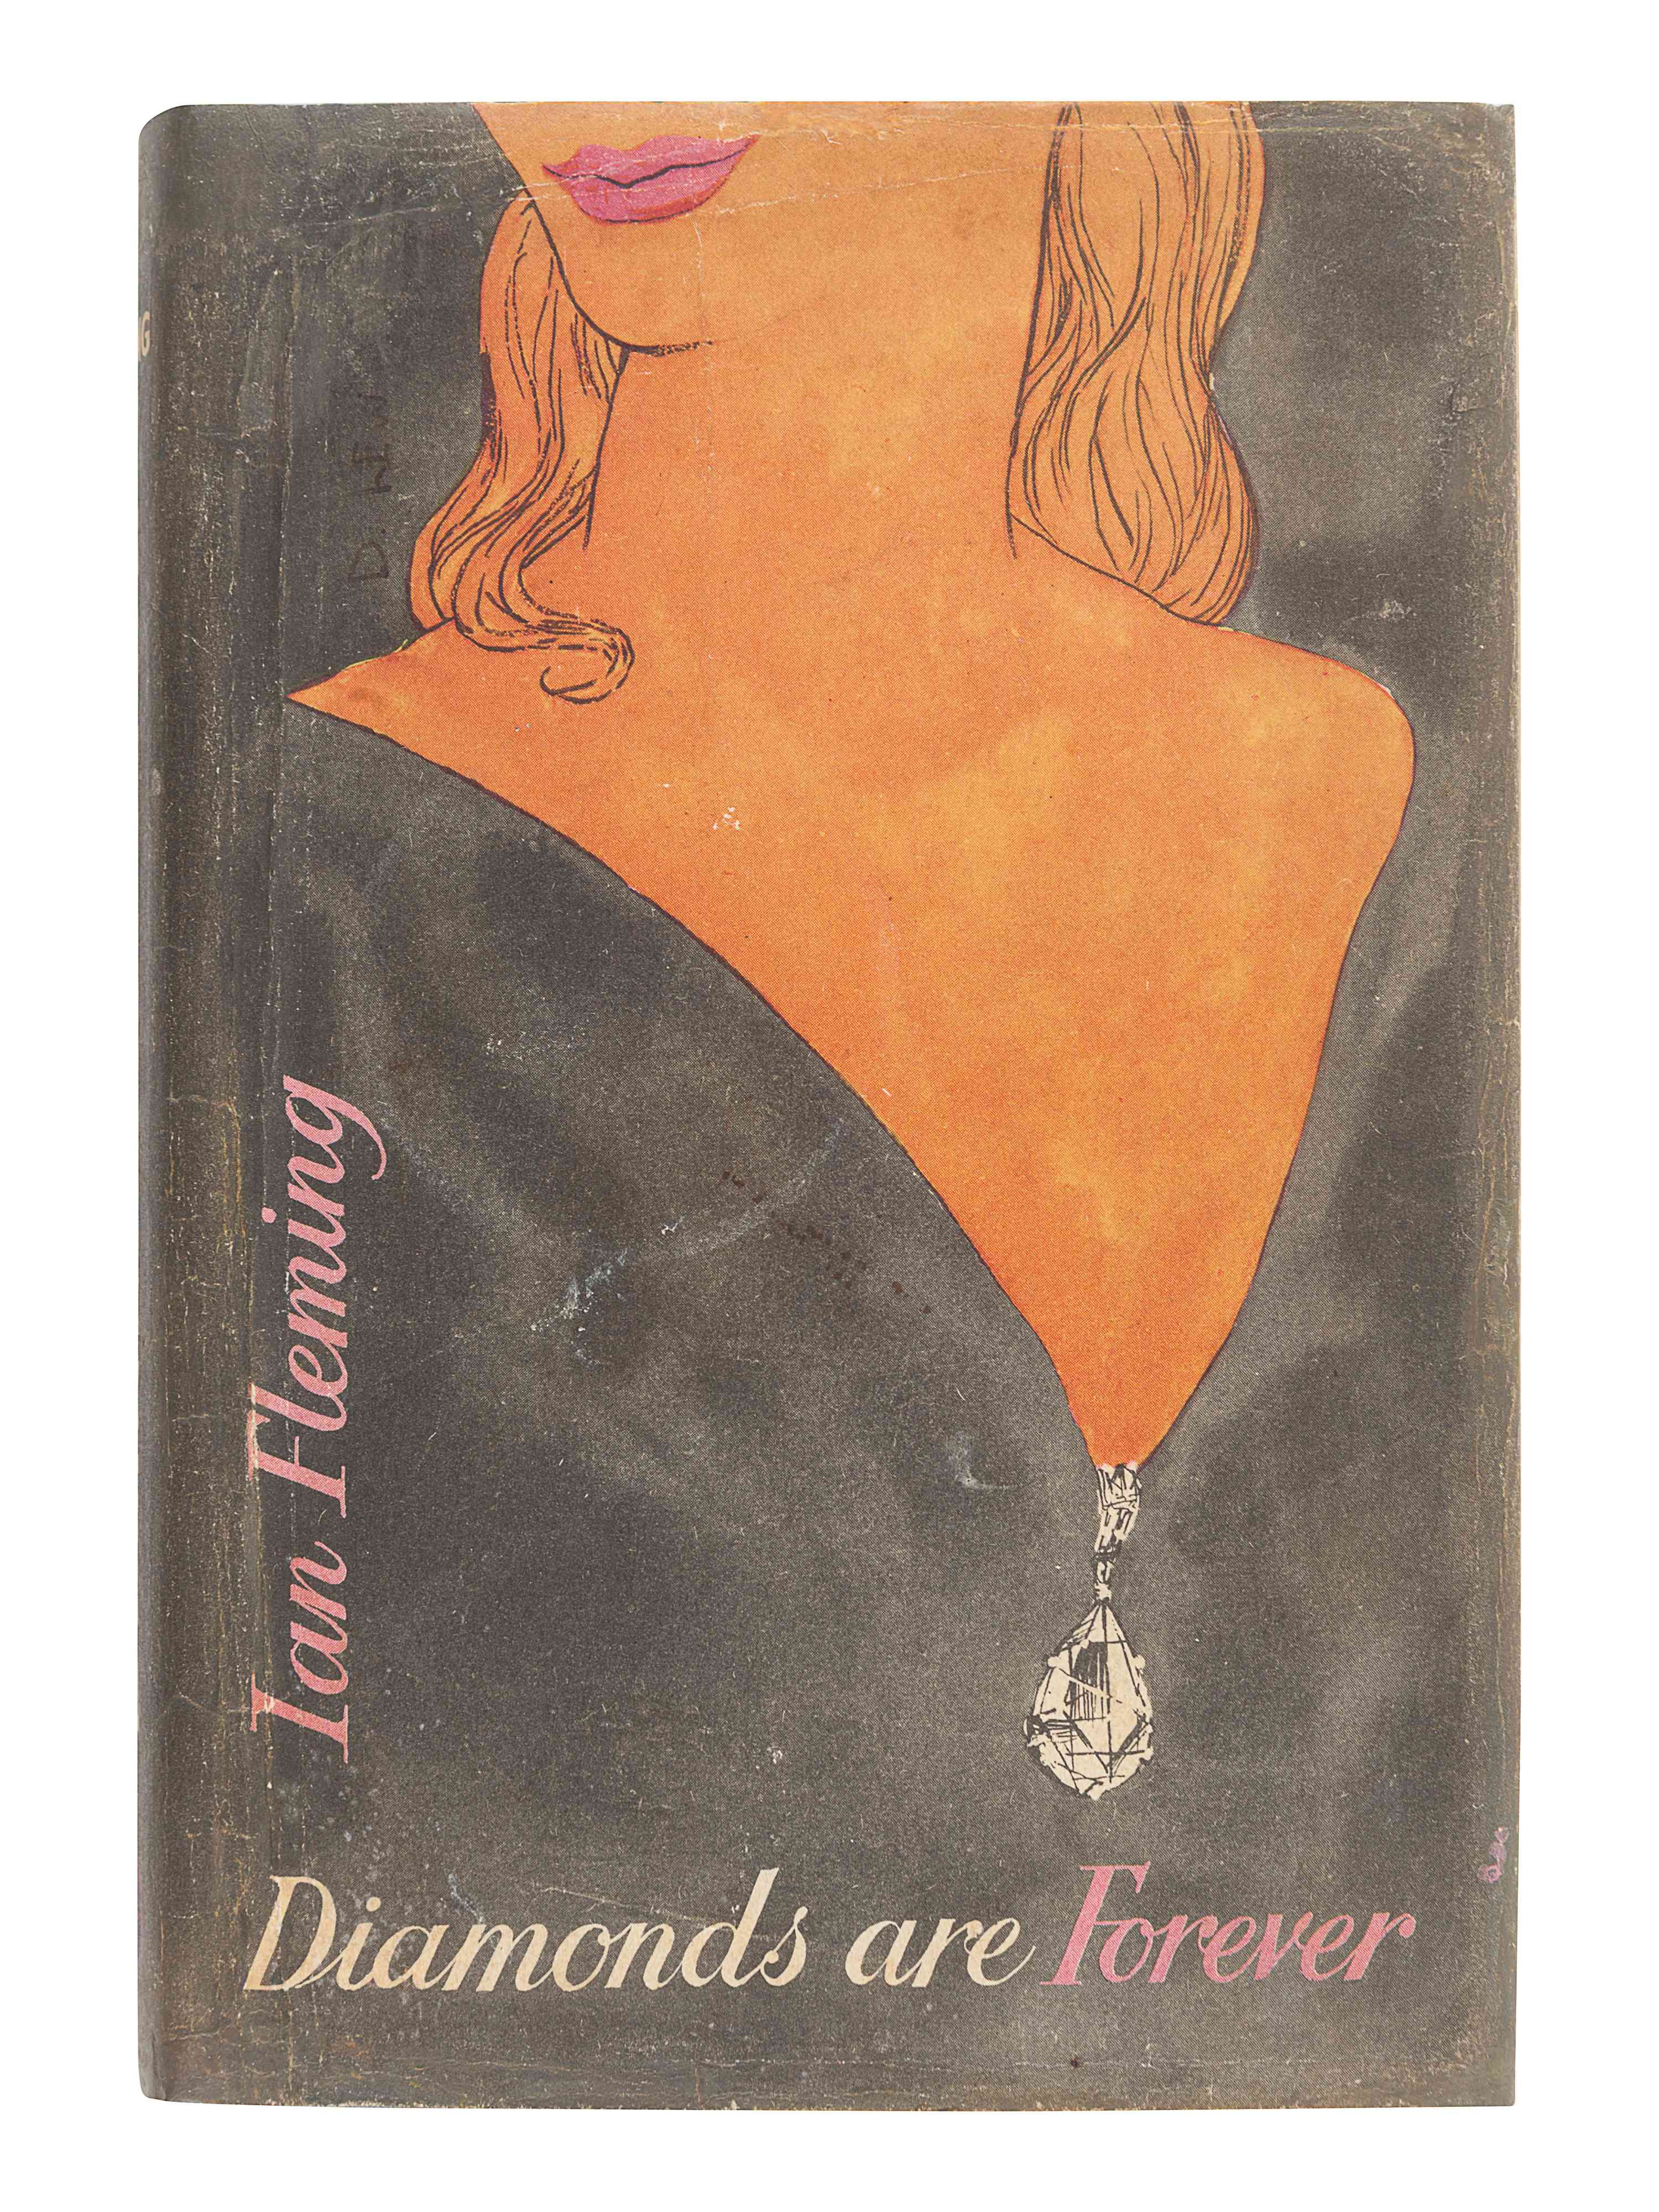 FLEMING, Ian (1908-1964). Diamonds Are Forever. London: Jonathan Cape, 1956.